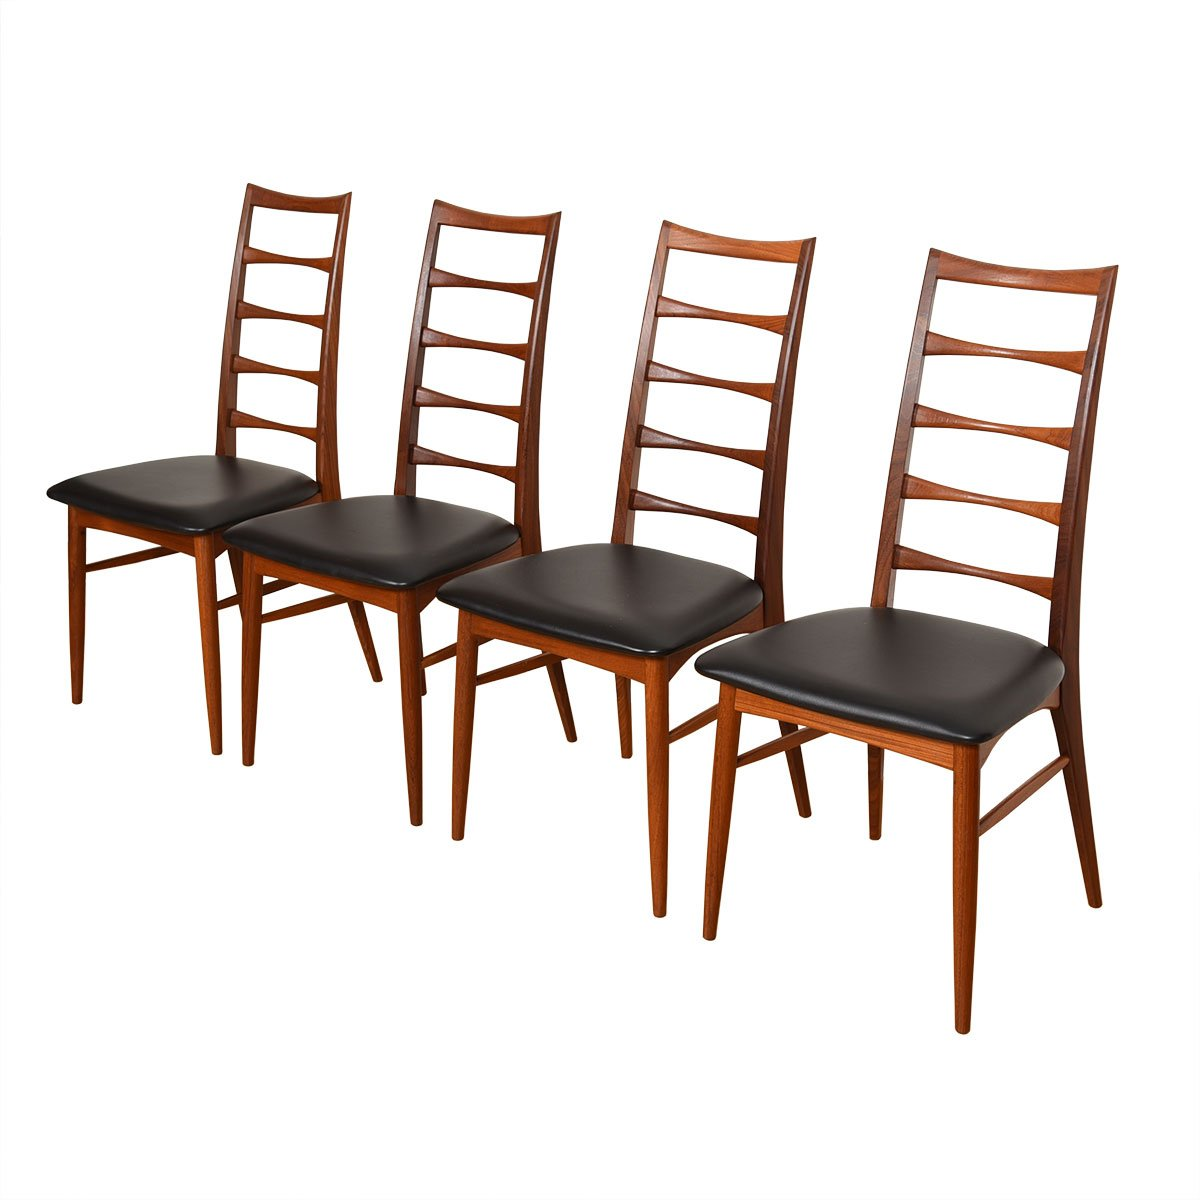 Set of 4-8 Danish Teak Dining Chairs.